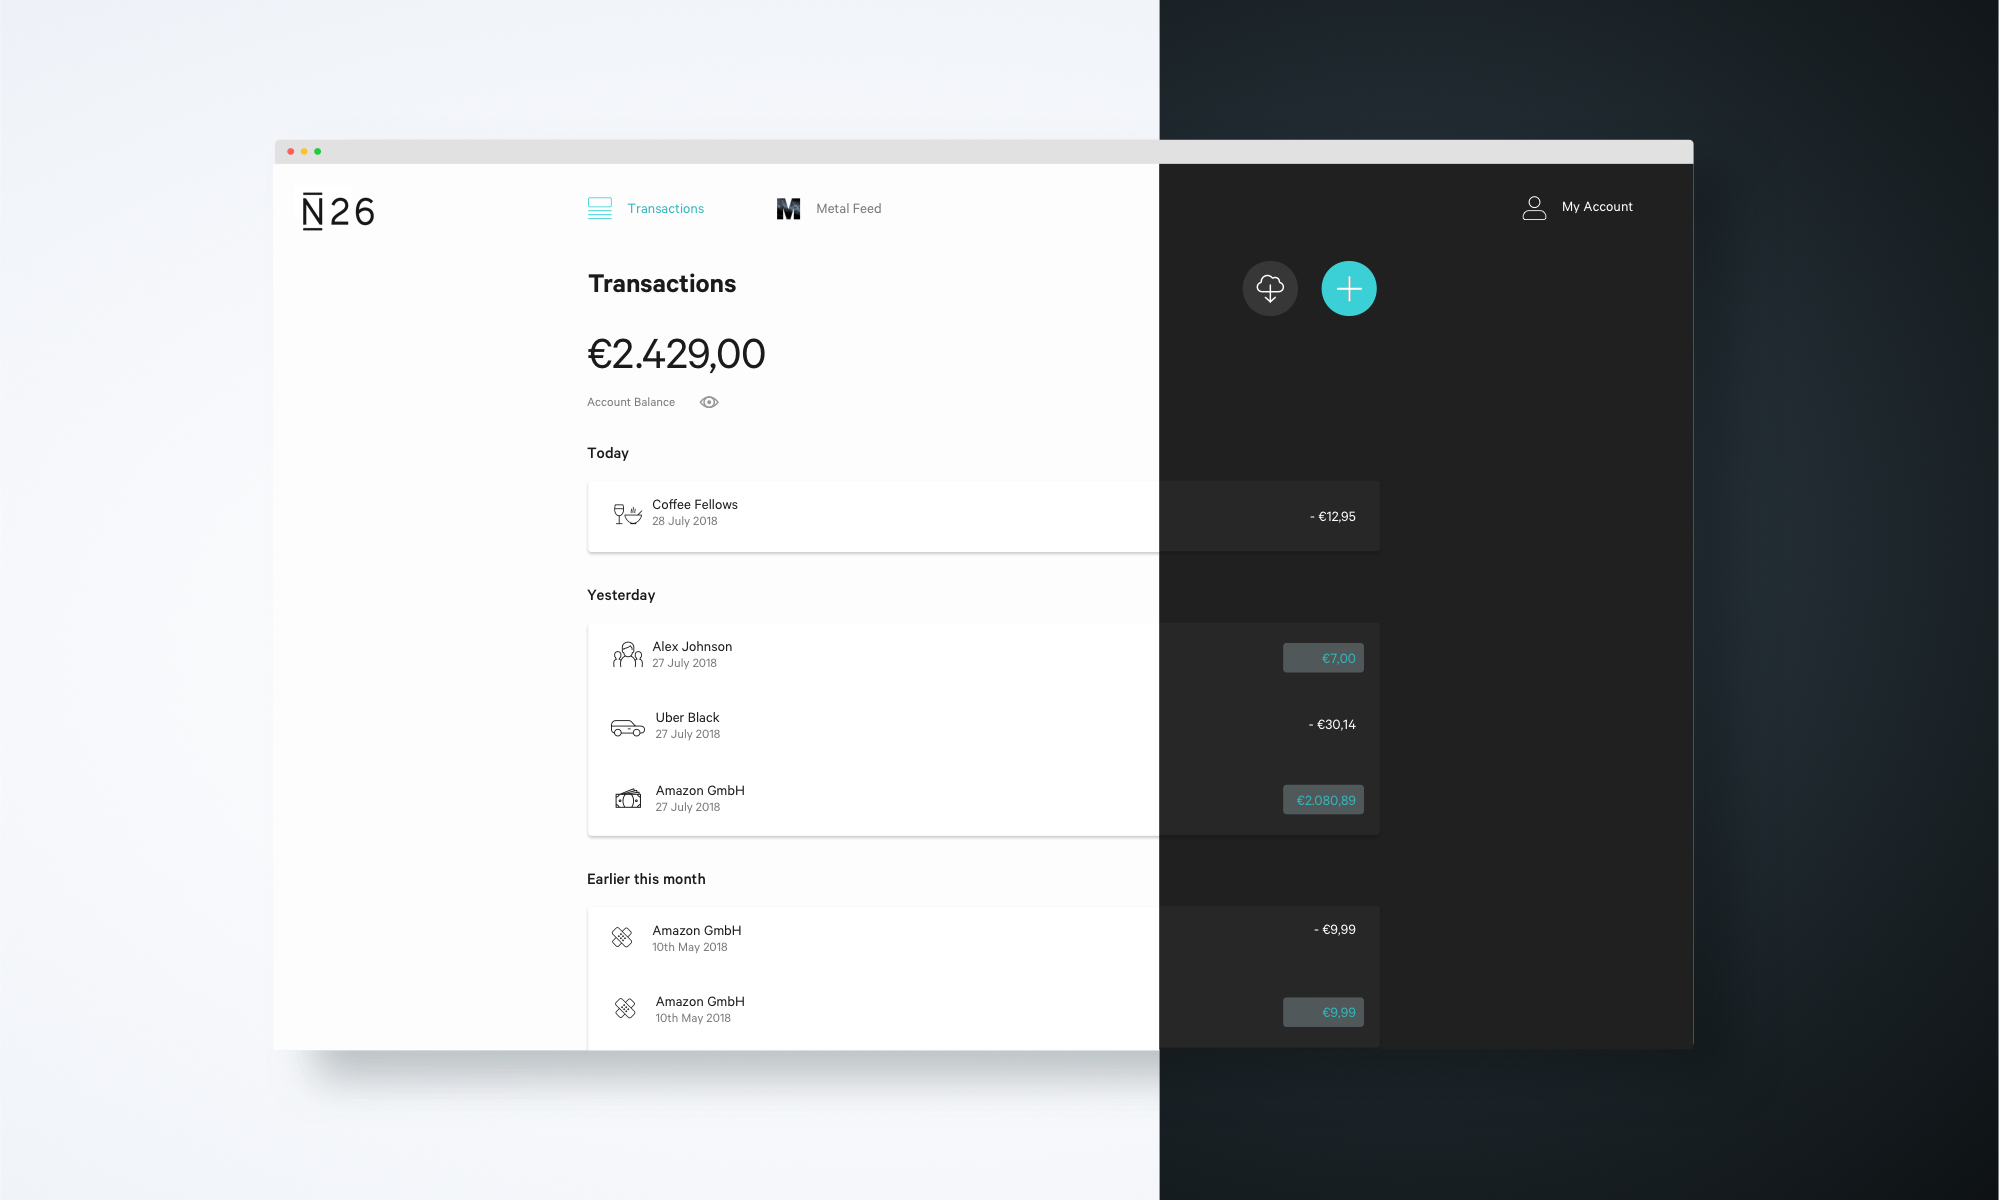 N26 updates its web app